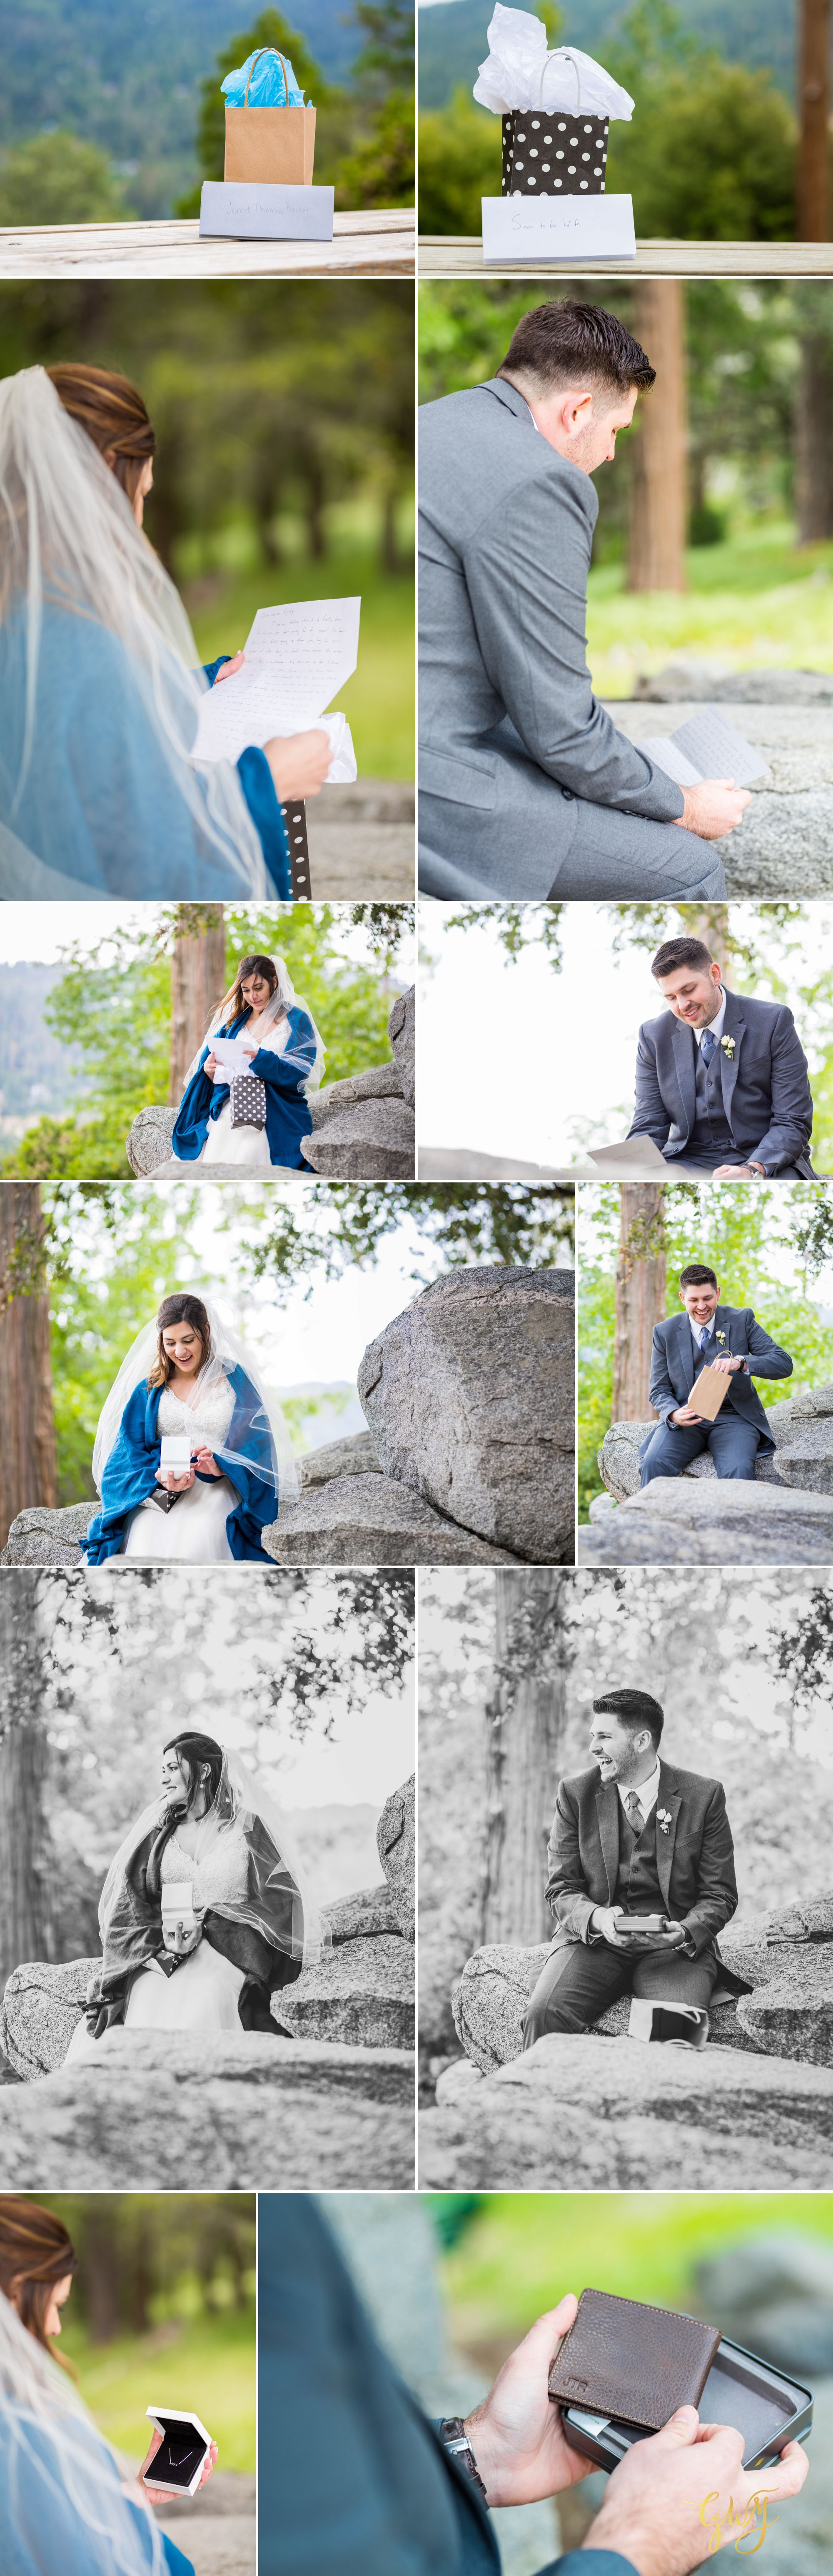 Allison + Jared Southern California Mountain Thousand Pines Christian Camp Wedding by Glass Woods Media 28.jpg